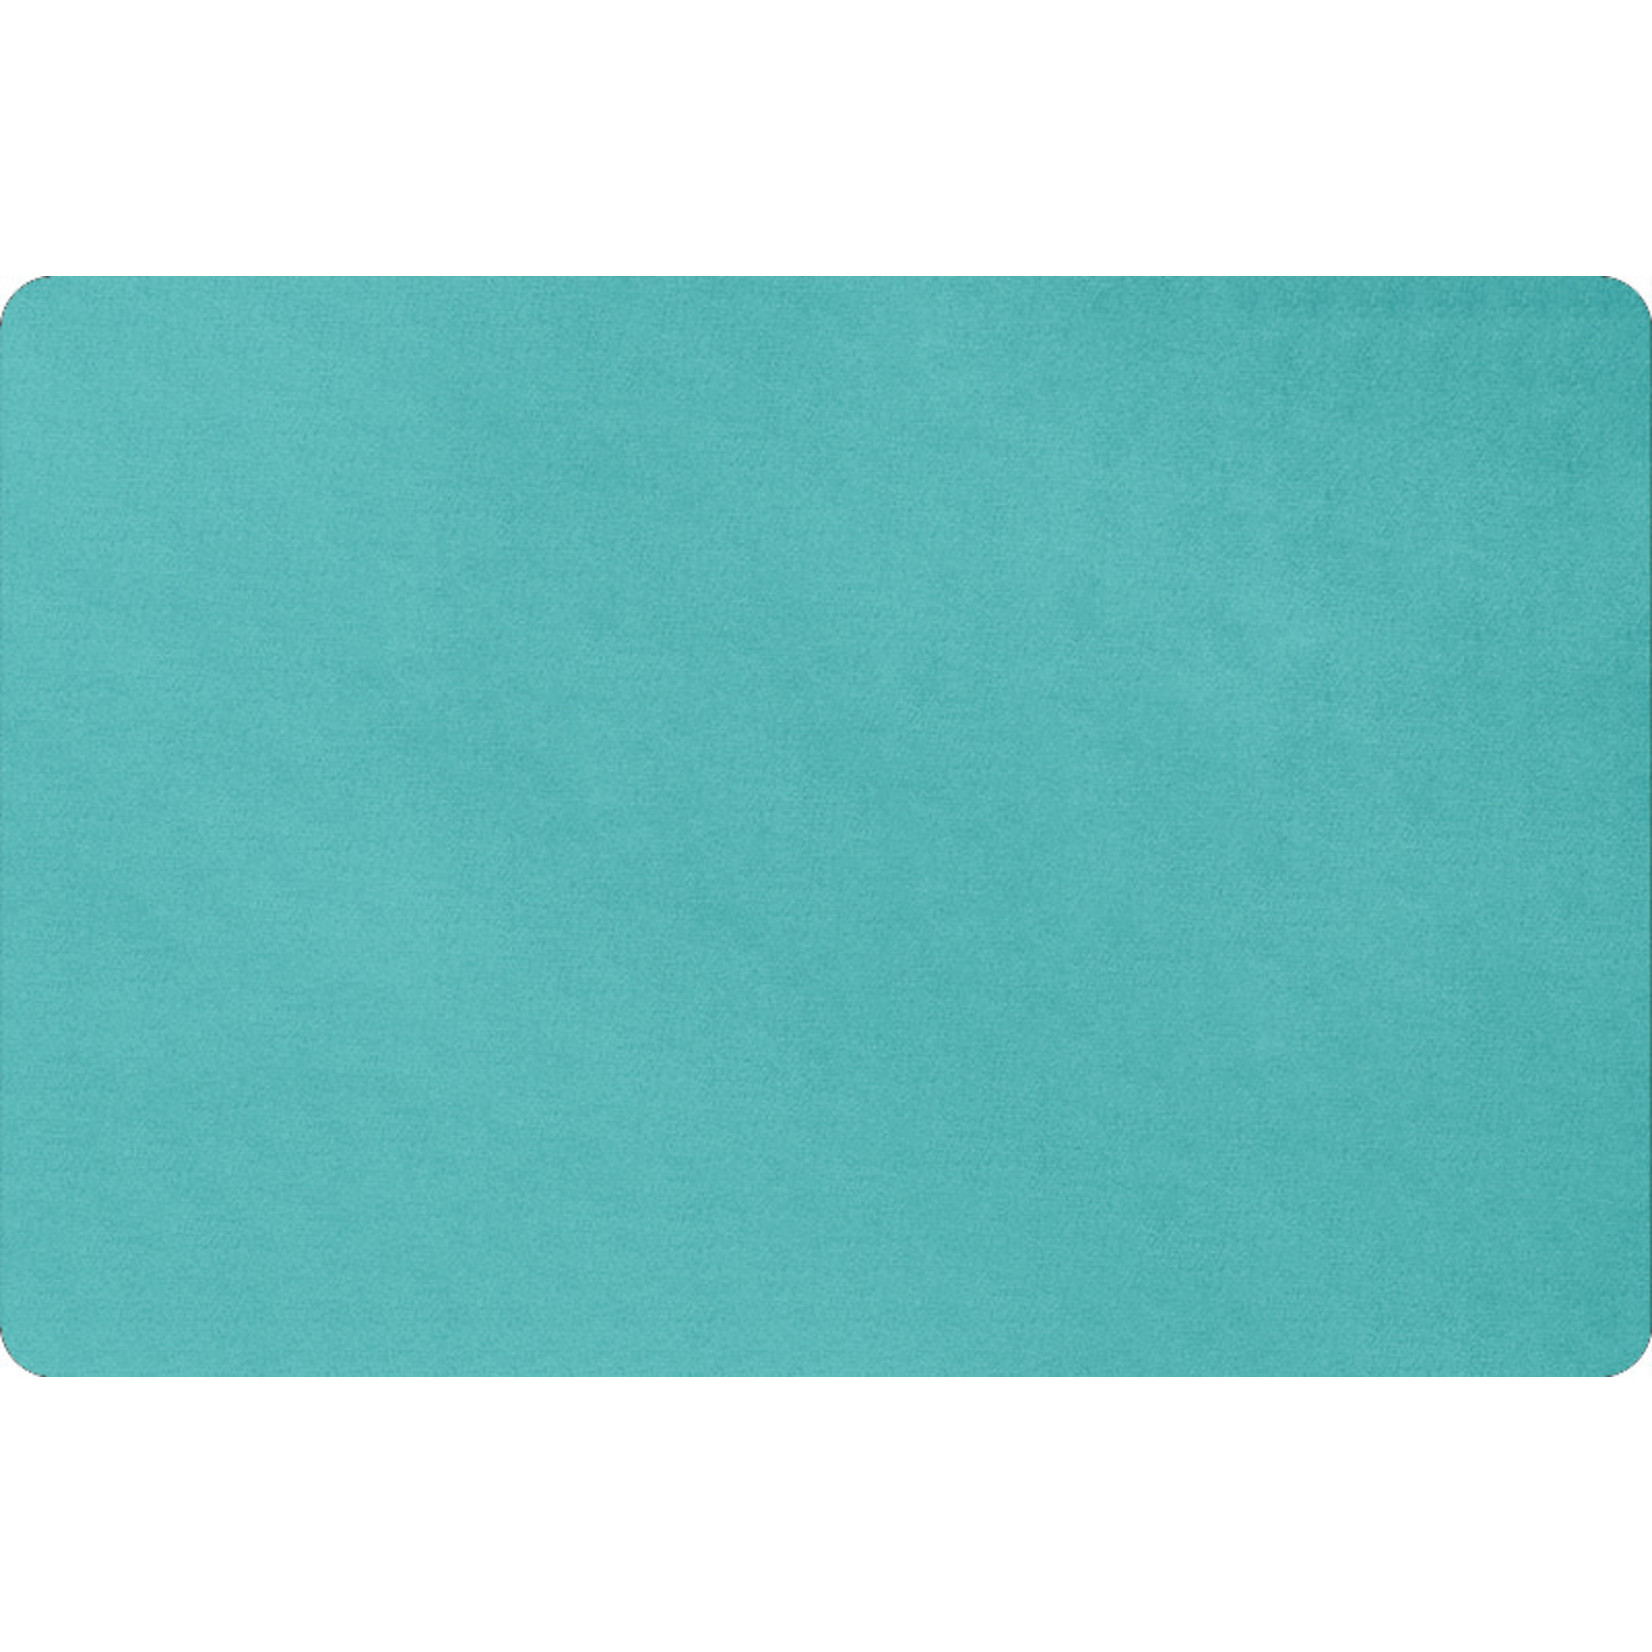 """Shannon Fabrics Minky, Extra Wide Solid Cuddle3, 90"""" Teal, (by the inch)"""